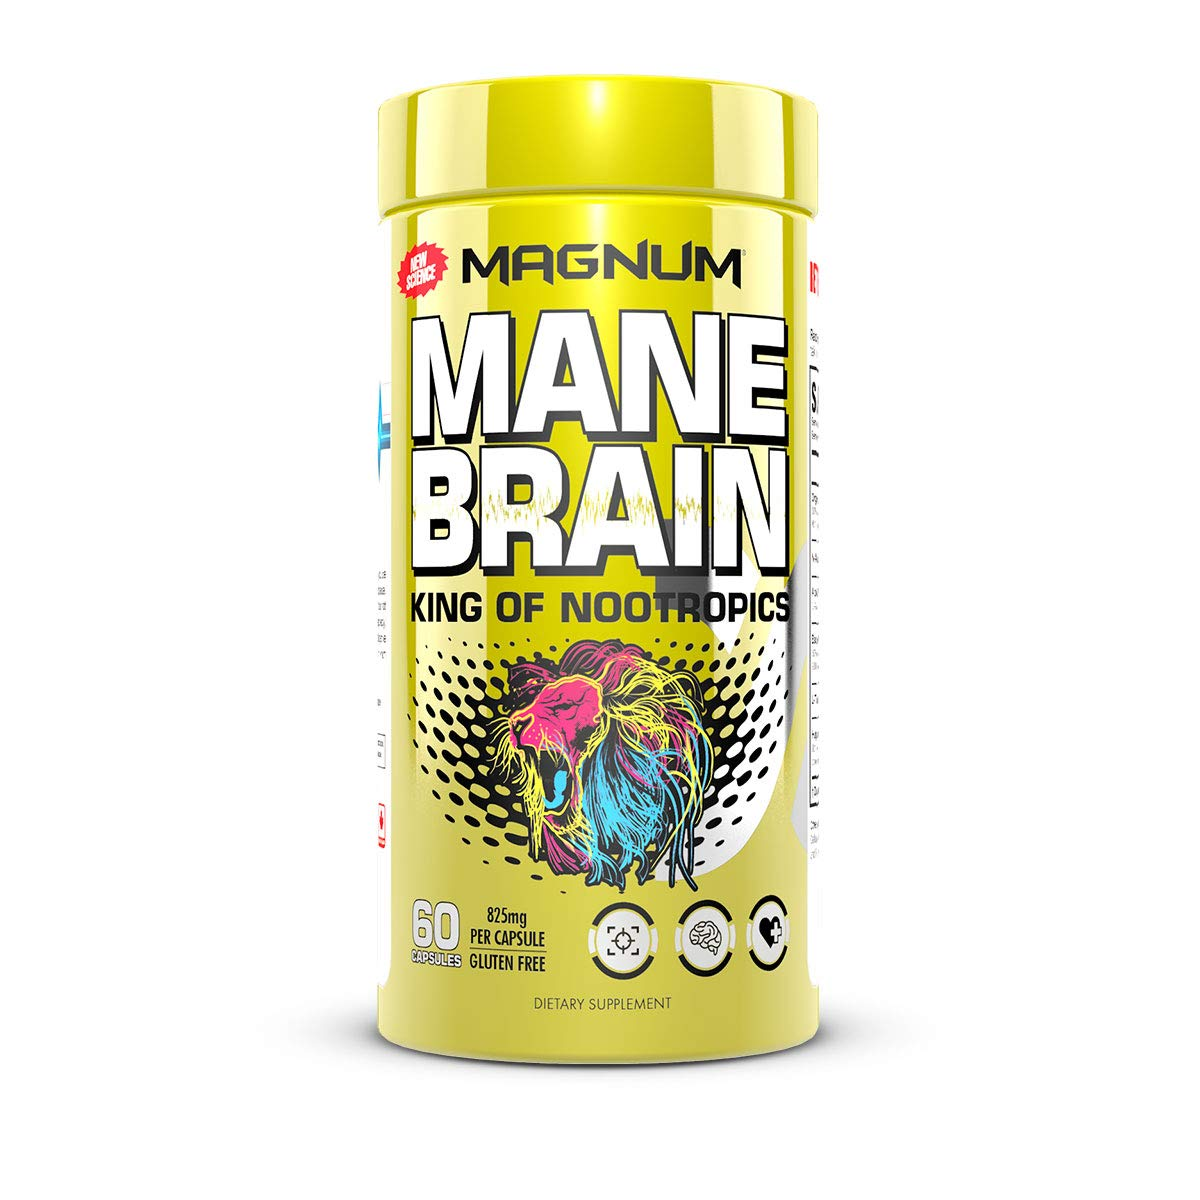 Mane Brain Nootropic Supplement 60 Capsules